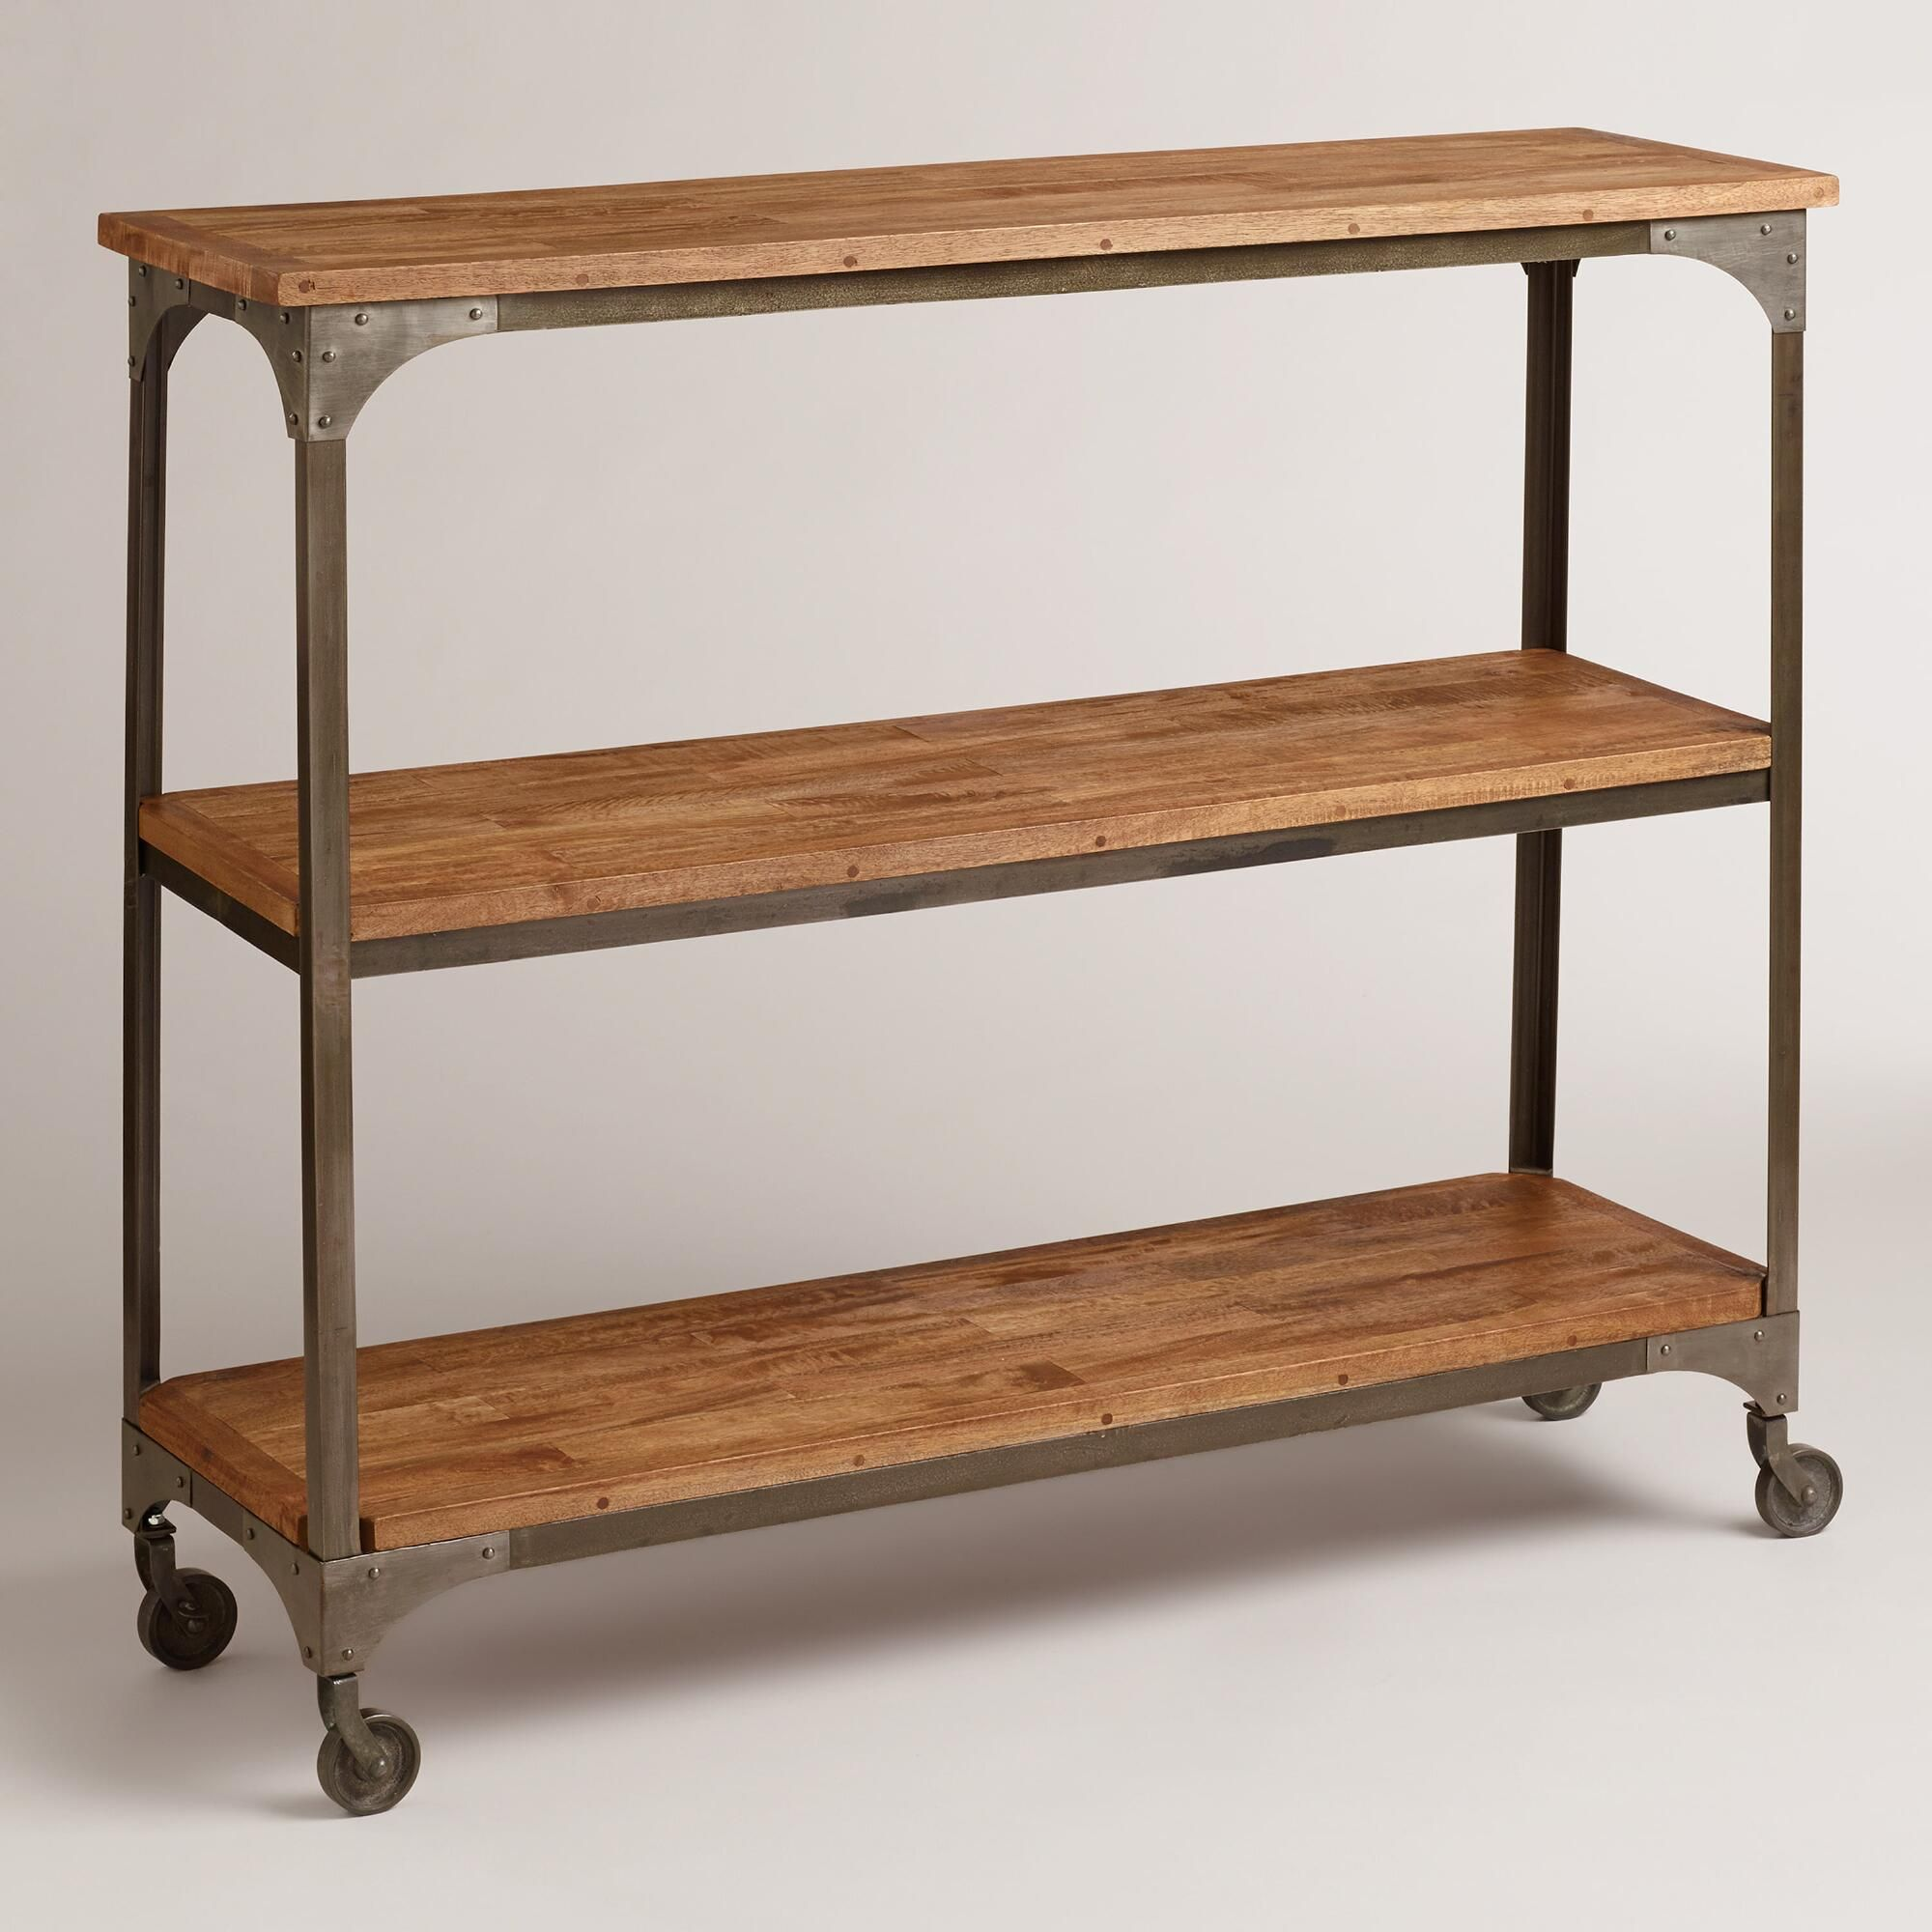 With three generously sized mango wood shelves and metal accents